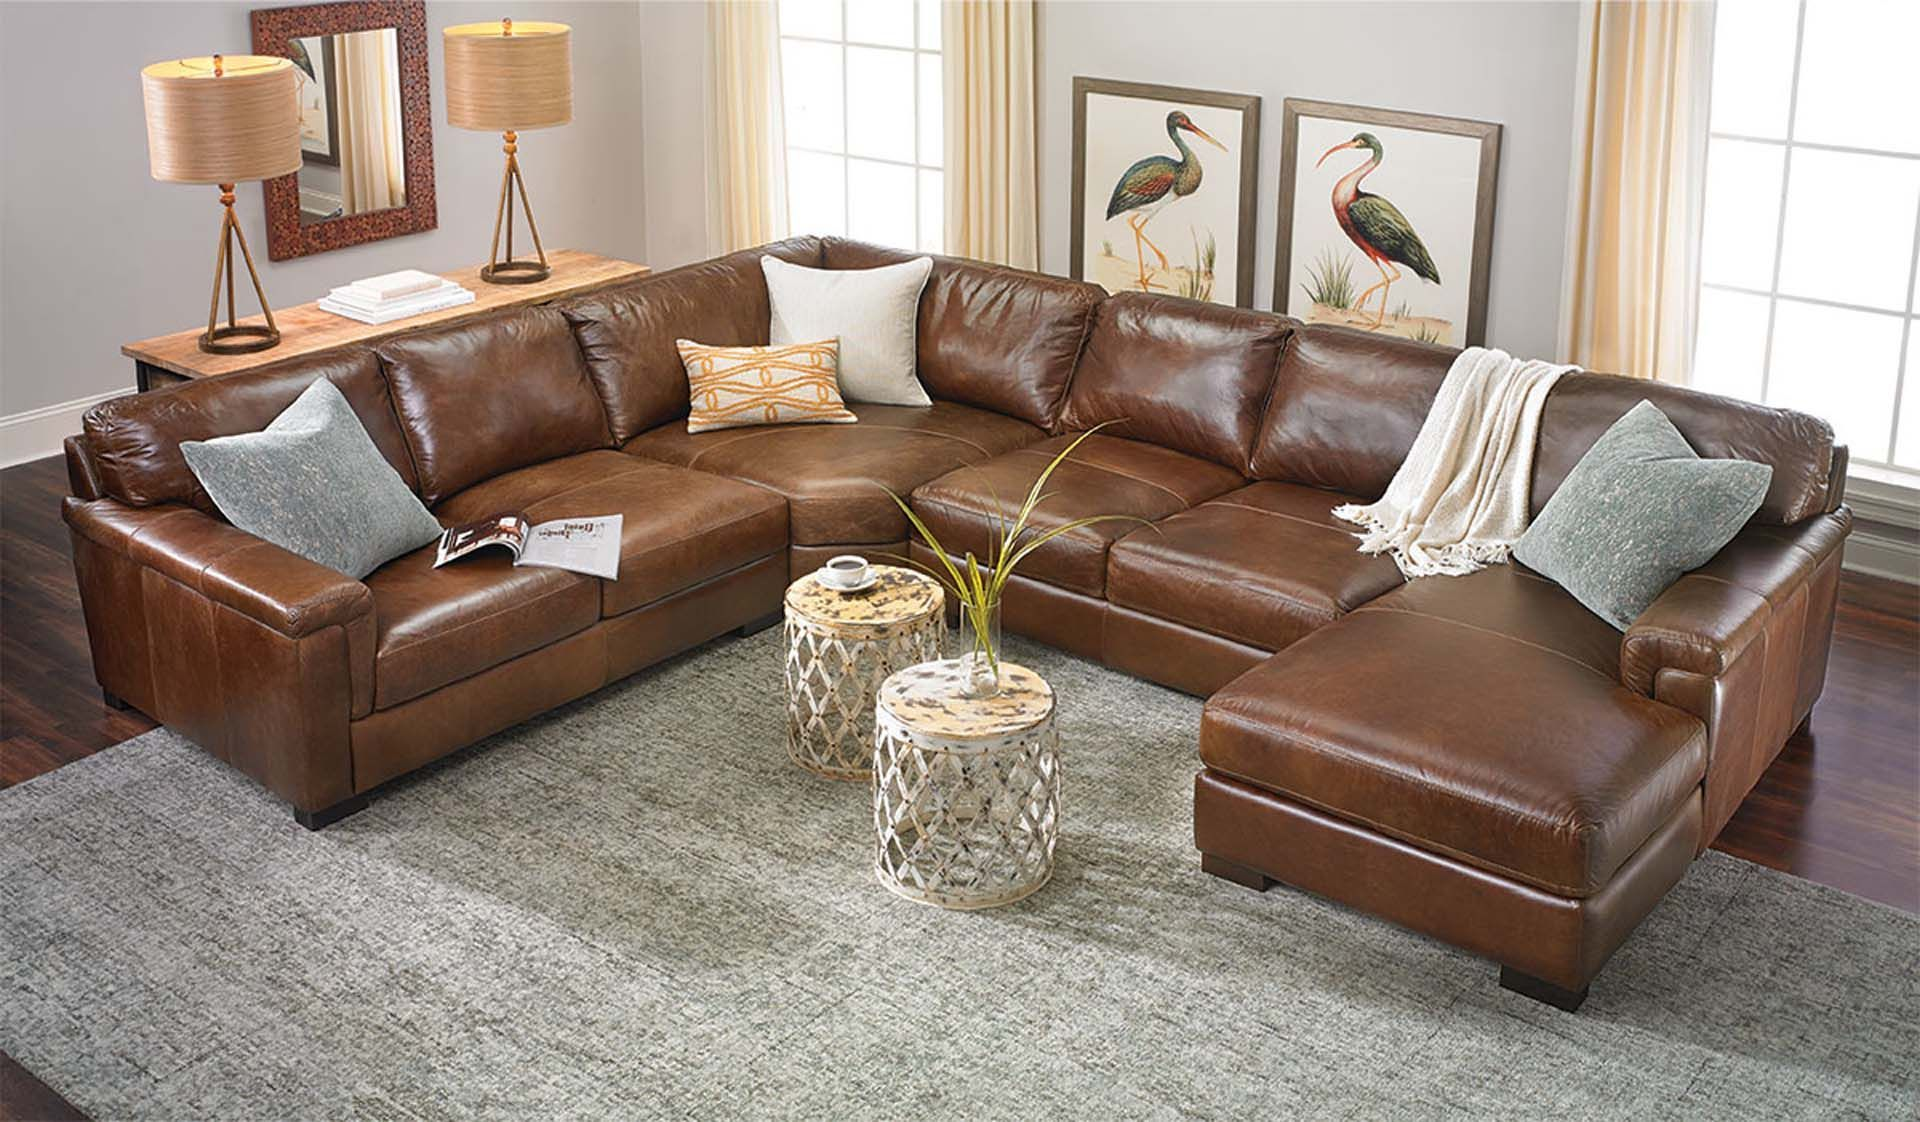 Italian Leather Living Room Furniture In 2020 Living Room Leather Leather Sectional Living Room Leather Living Room Furniture